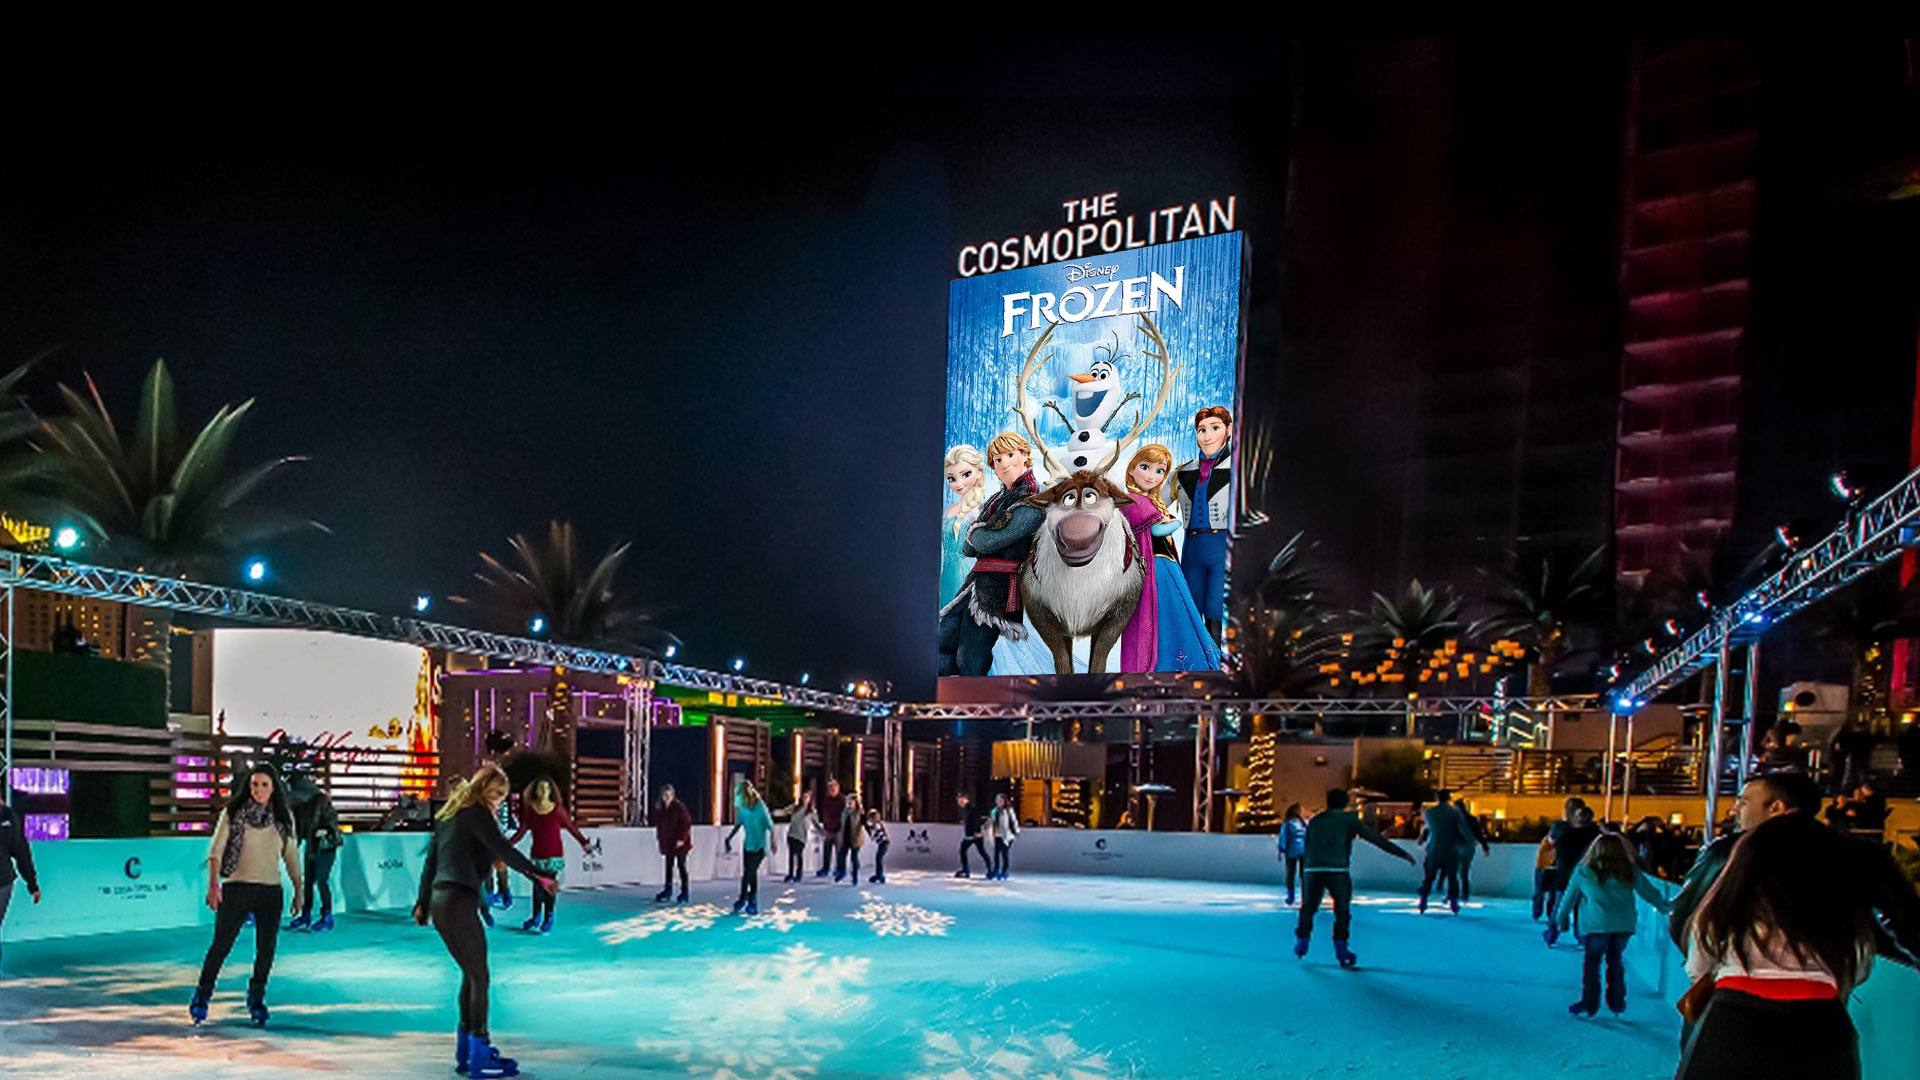 Date Skate Movie Nights at Cosmopolitan of Las Vegas